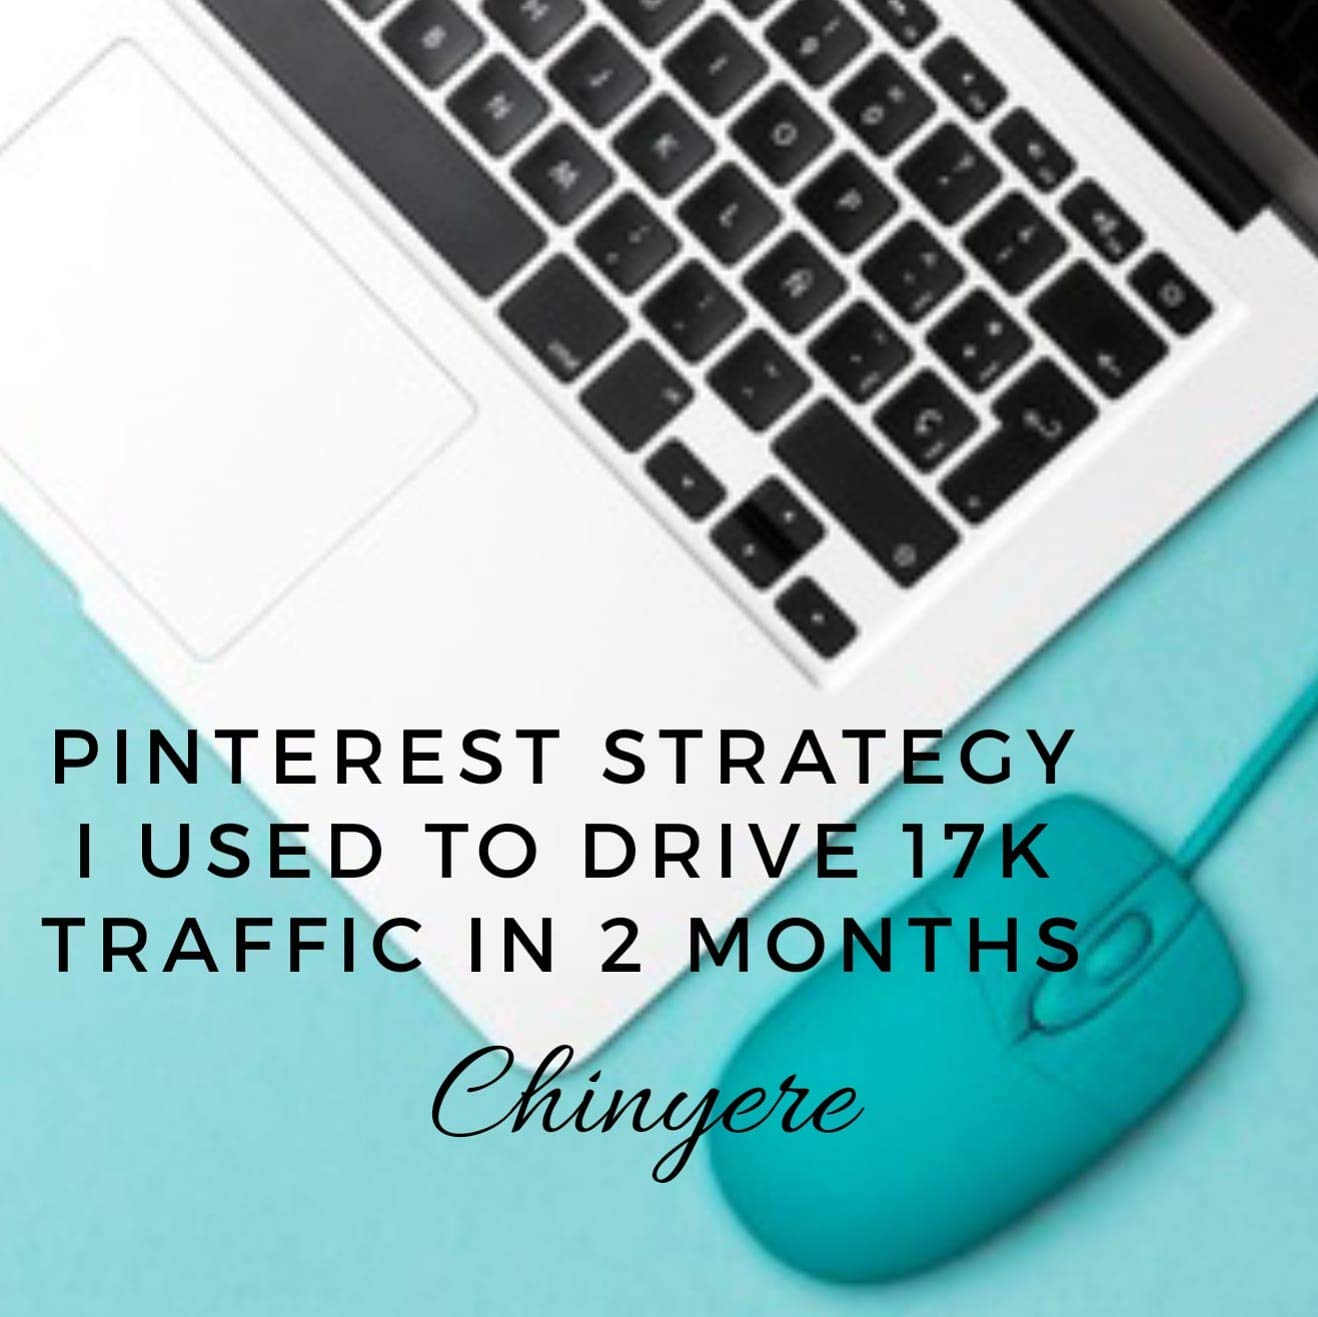 17,000 in 2 months: Pinterest strategy from 0-17,000 blog visitors in 2 months